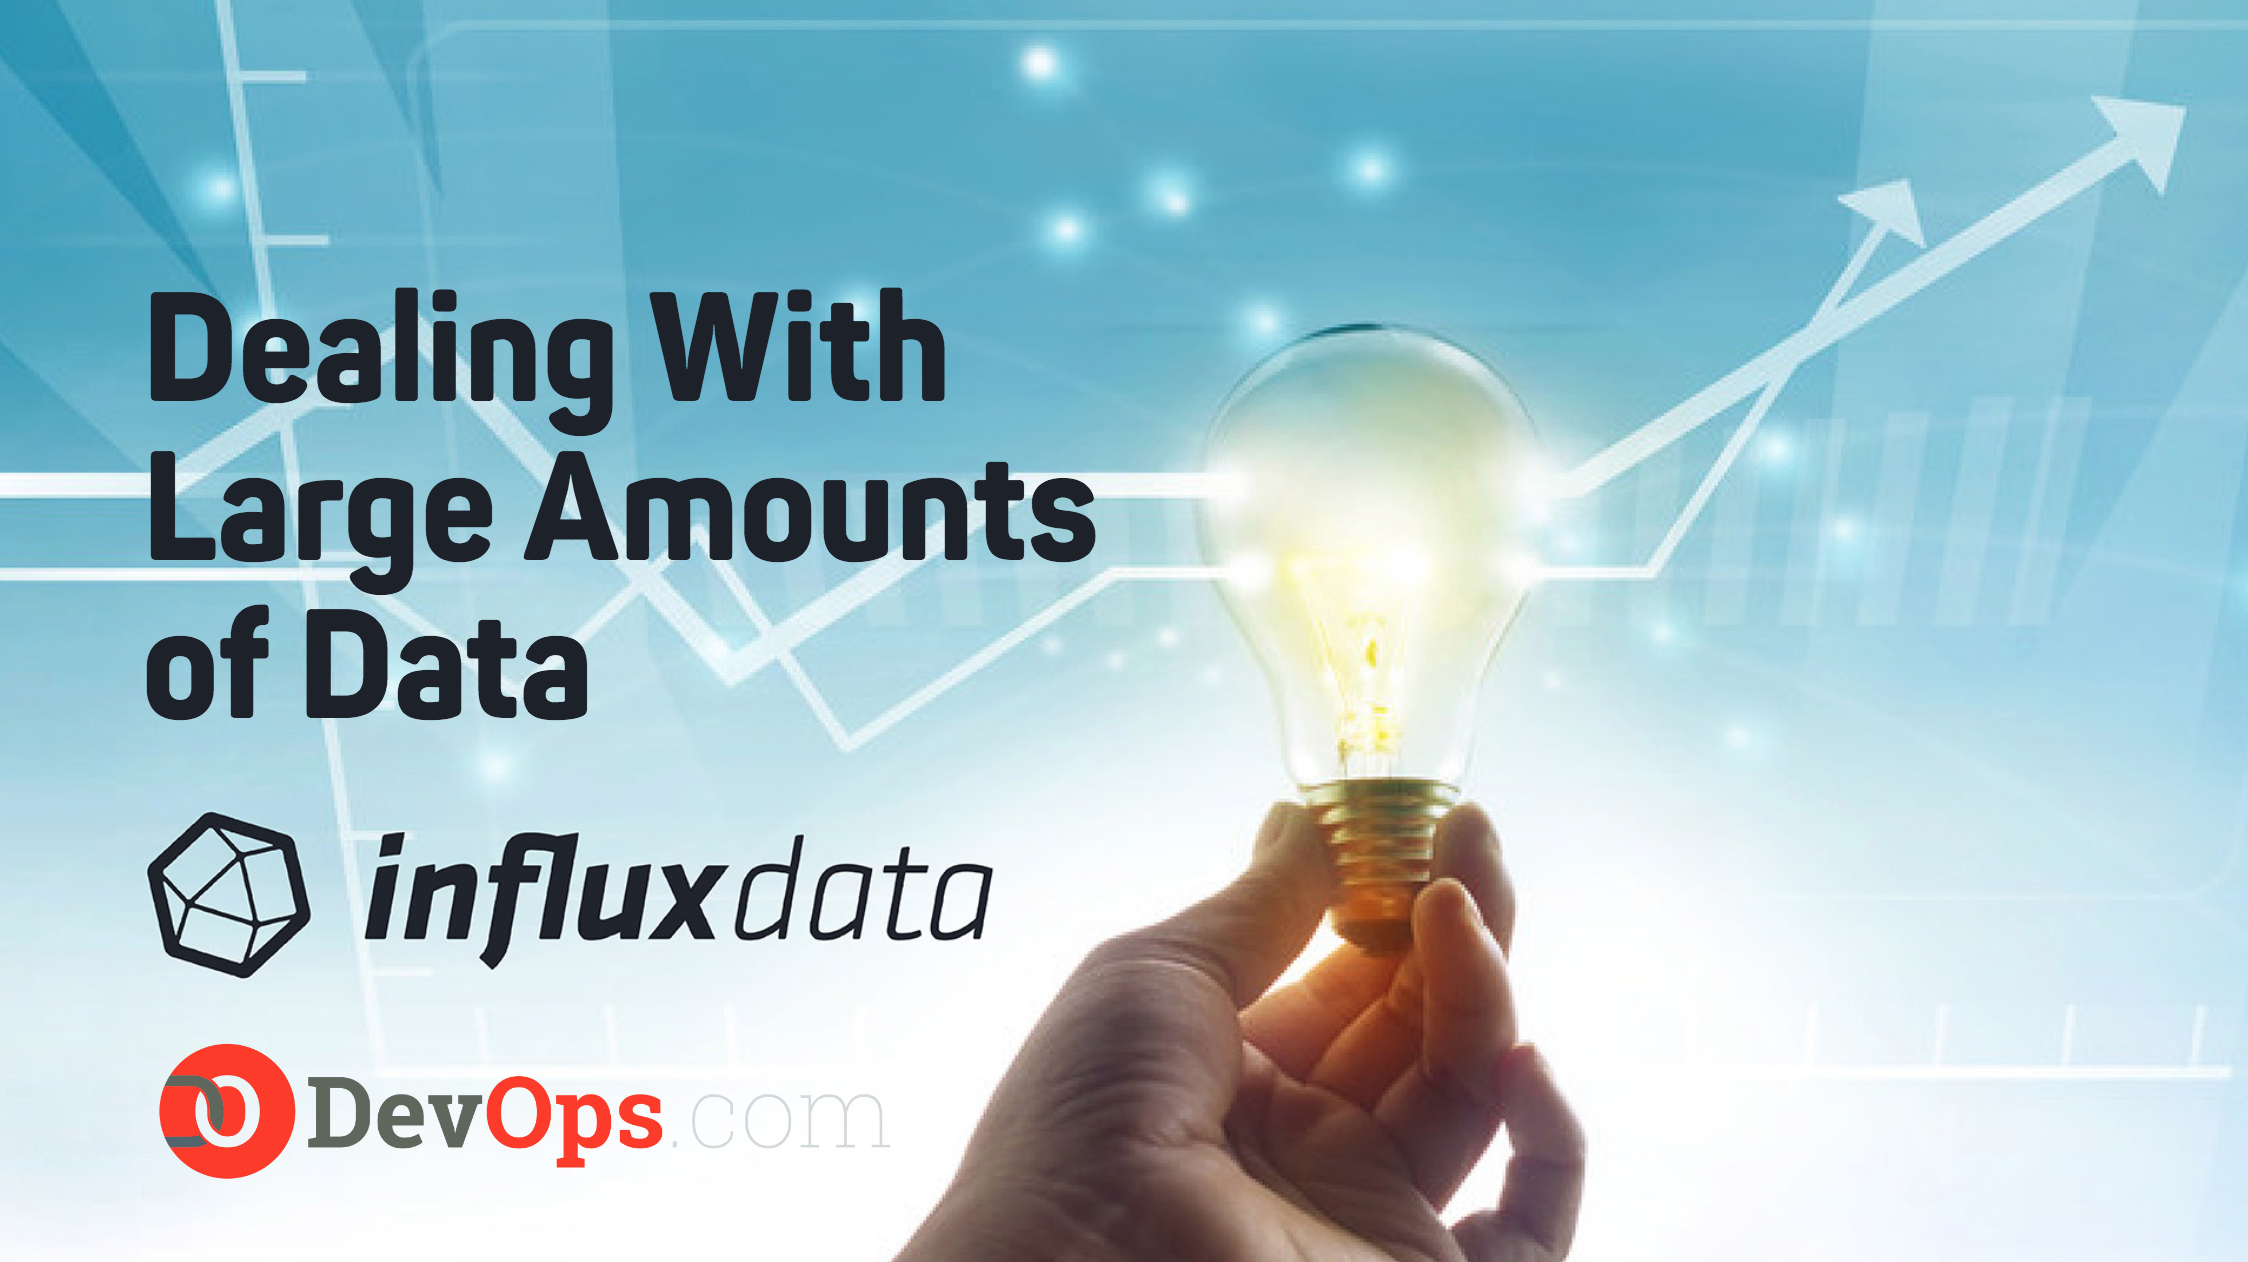 InfluxData Video Series: Dealing with Large Amounts of Data